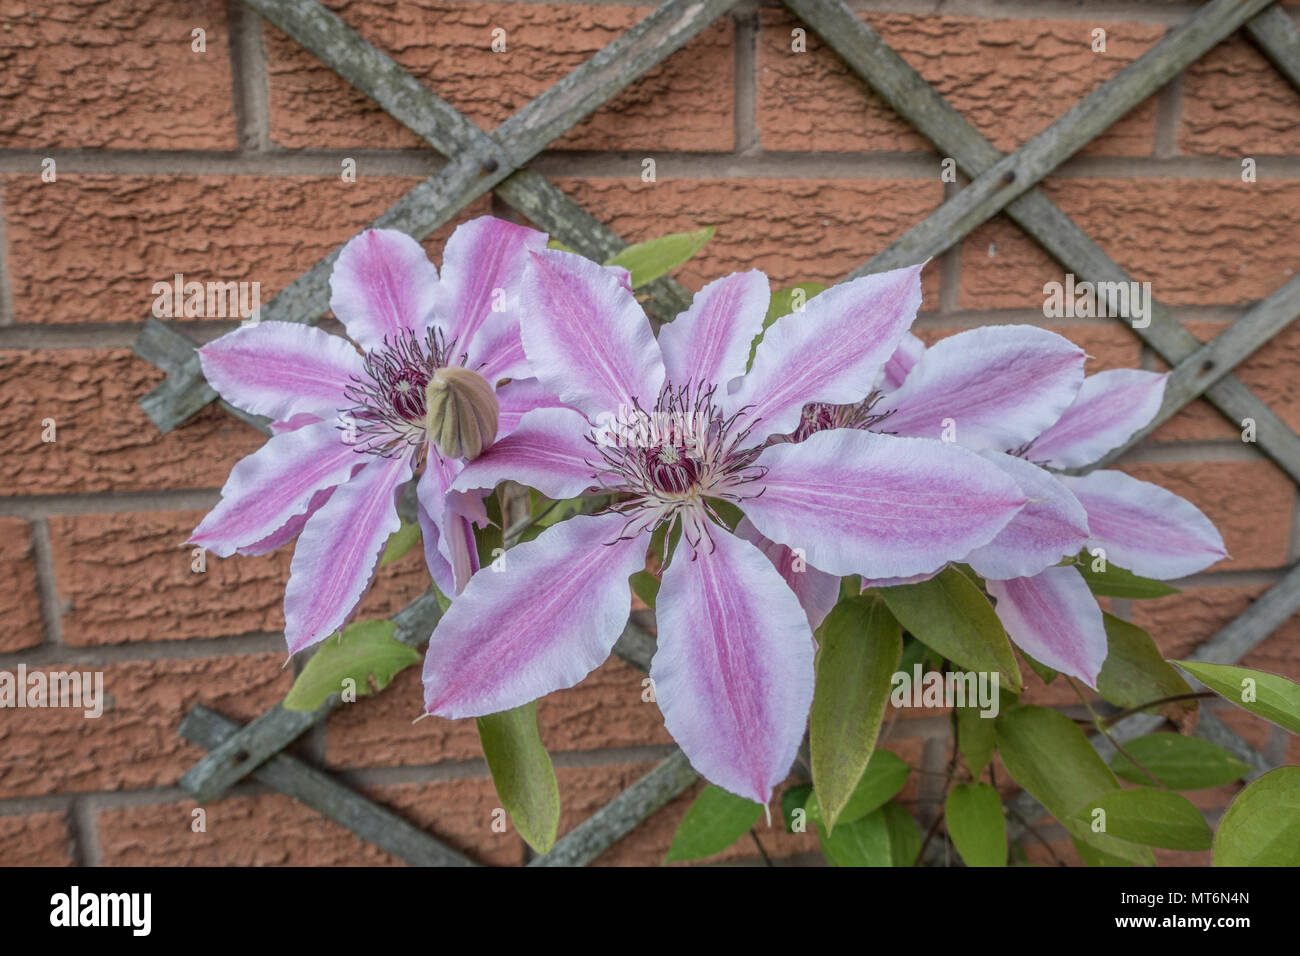 Pale pink Clematis flowers climbing a wall - Stock Image